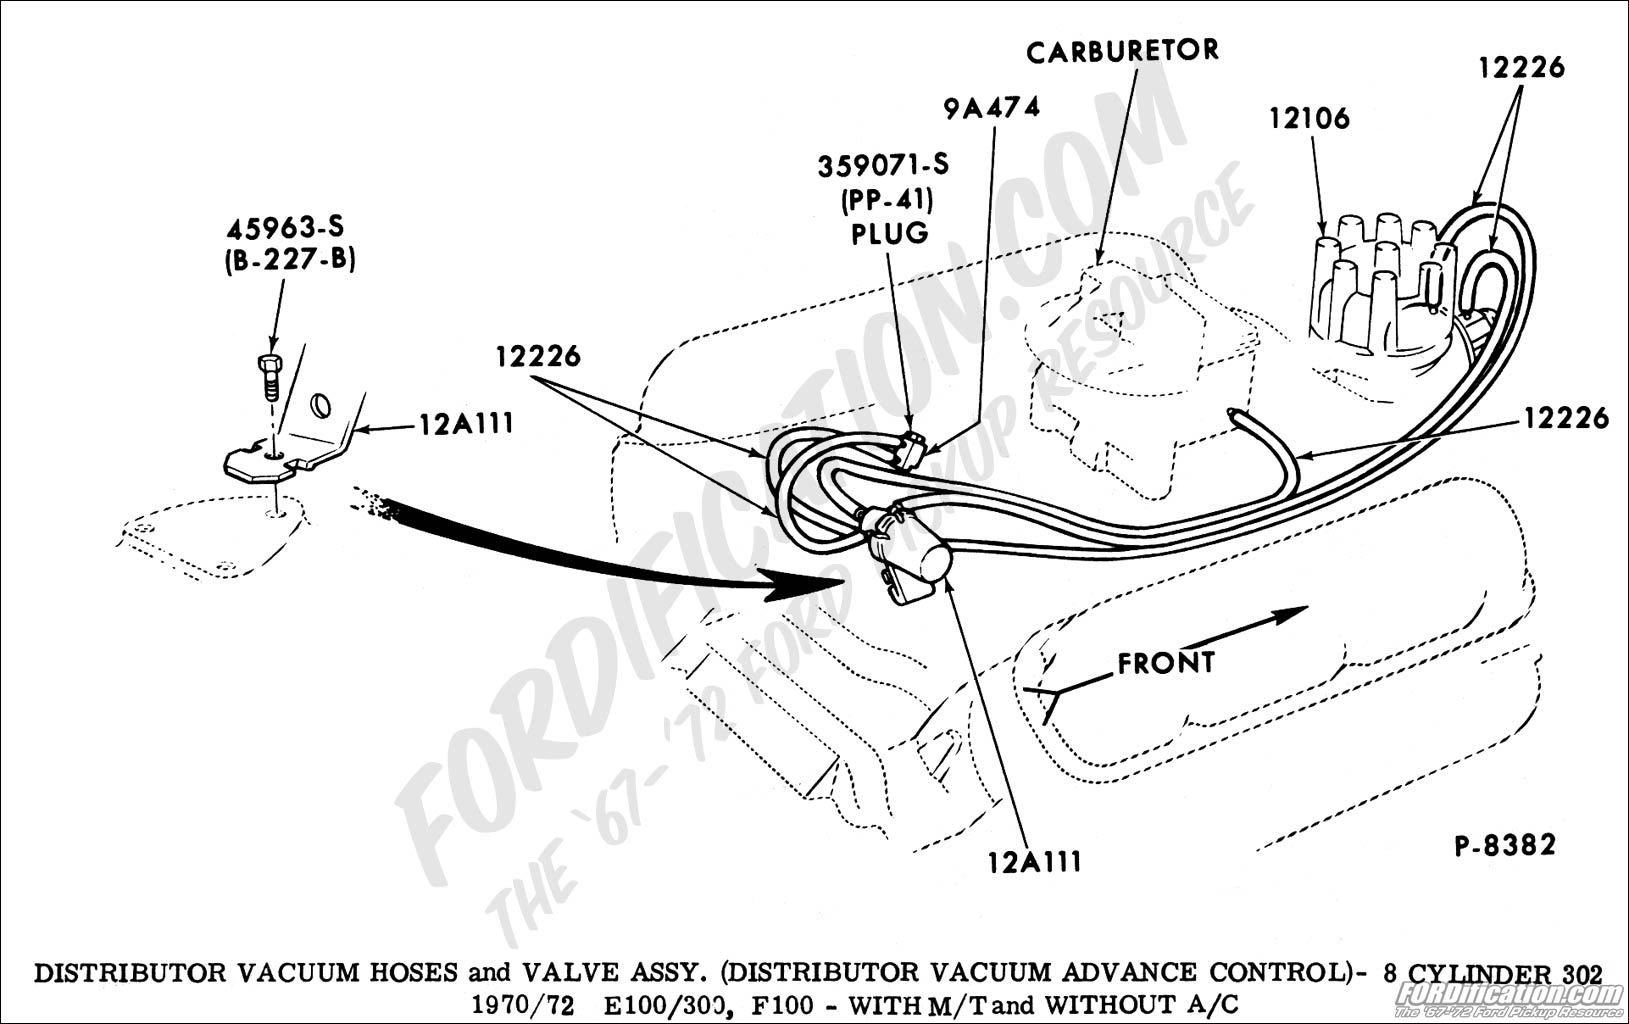 351 Cleveland Wiring Diagram 1973 Mustang on Ignition Switch Wiring Diagram For 1985 Ford Ranger